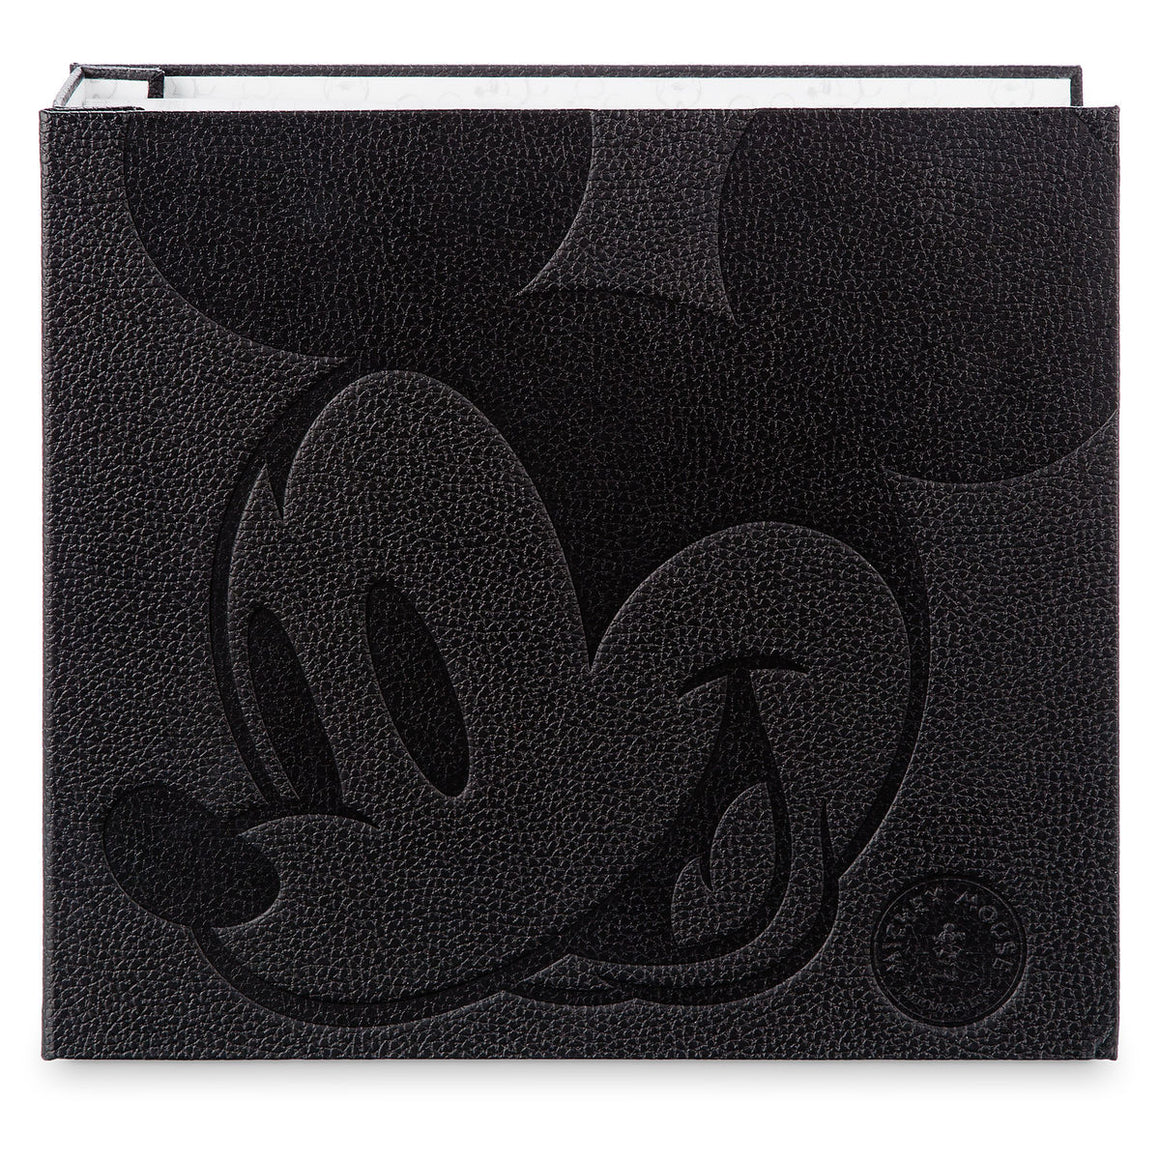 Mickey Mouse Memories Pin Collector's Album with Limited Mickey Memories Pin